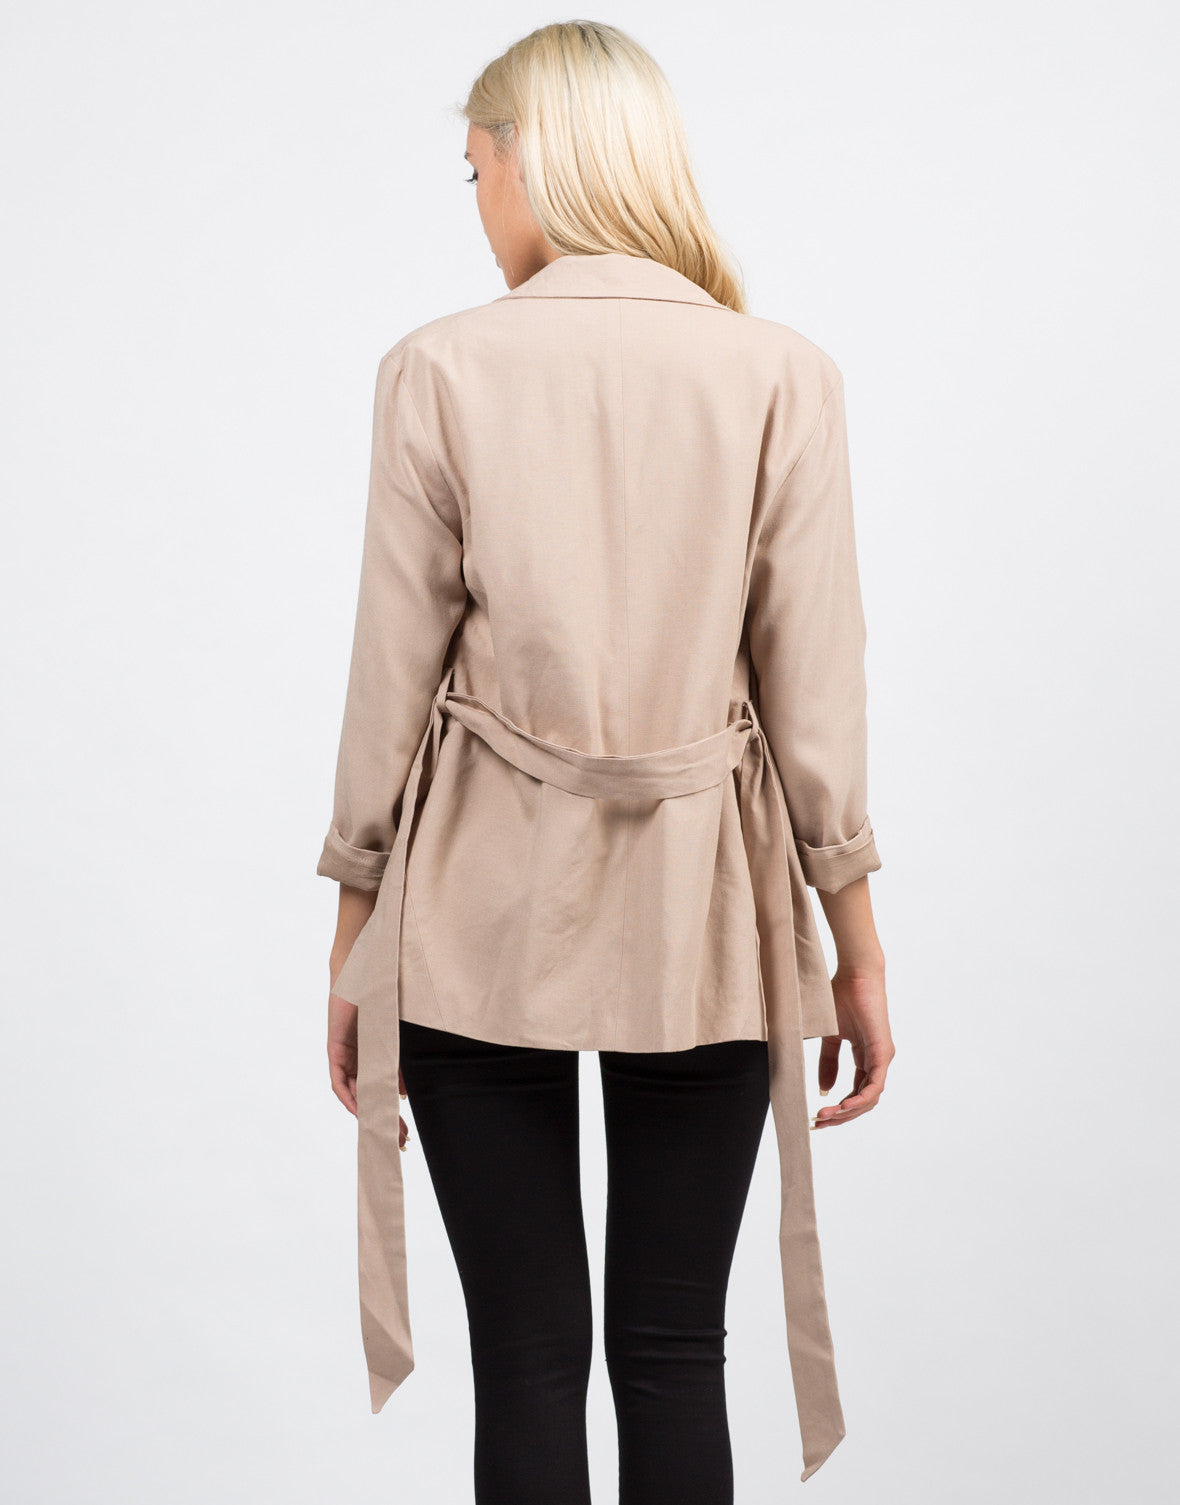 Back View of Belted Utility Jacket